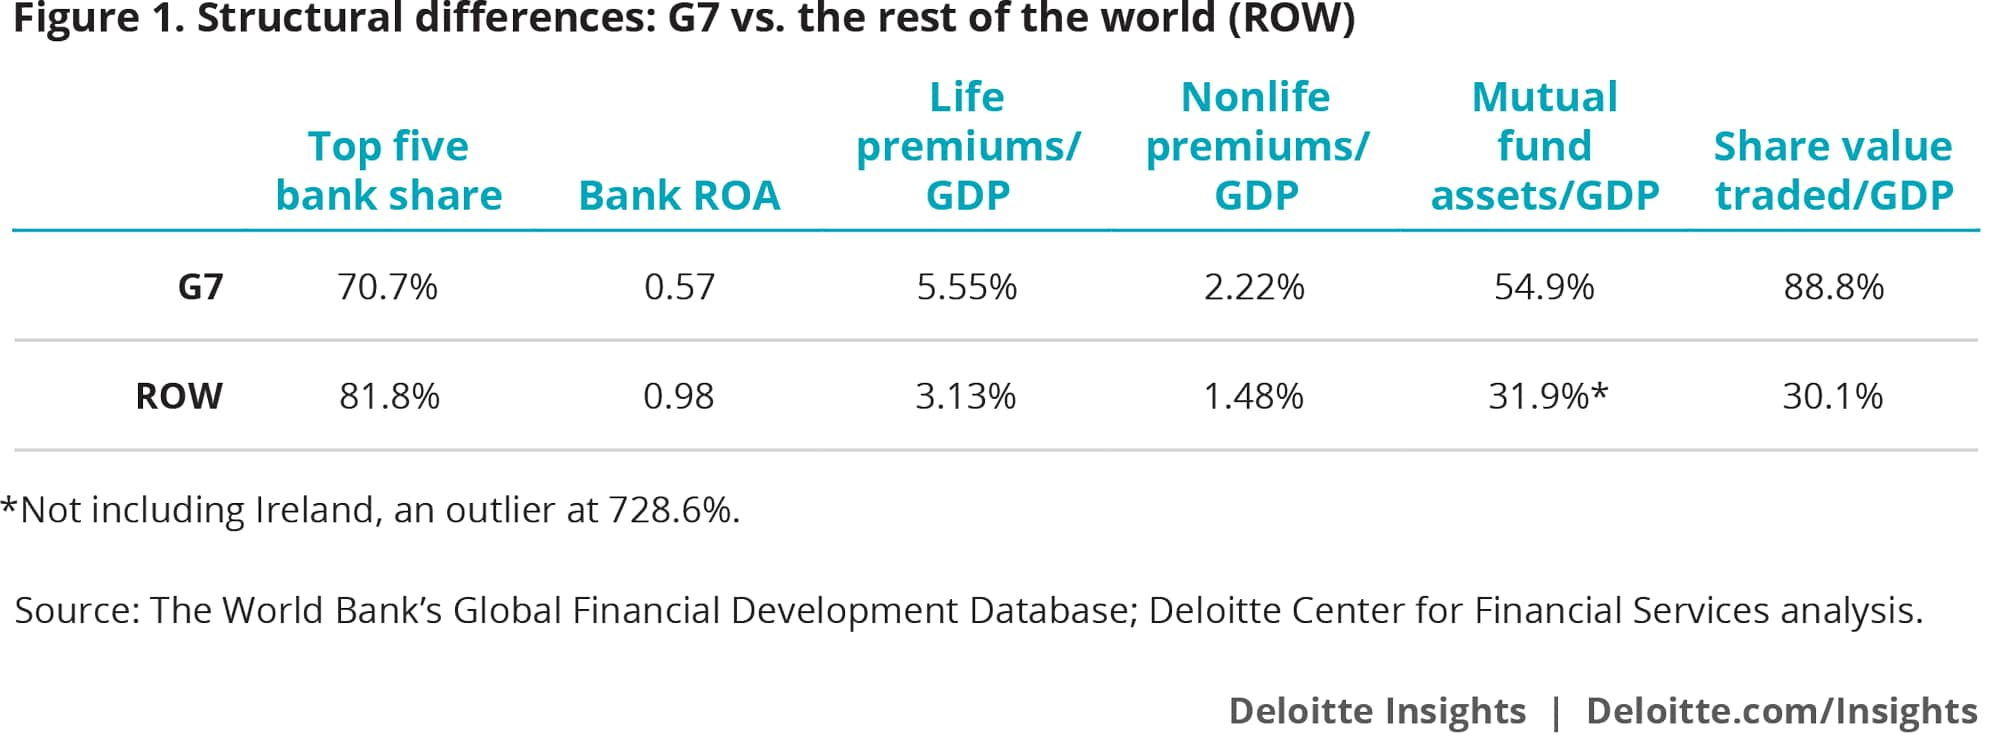 Structural differences: G7 vs. the rest of the world